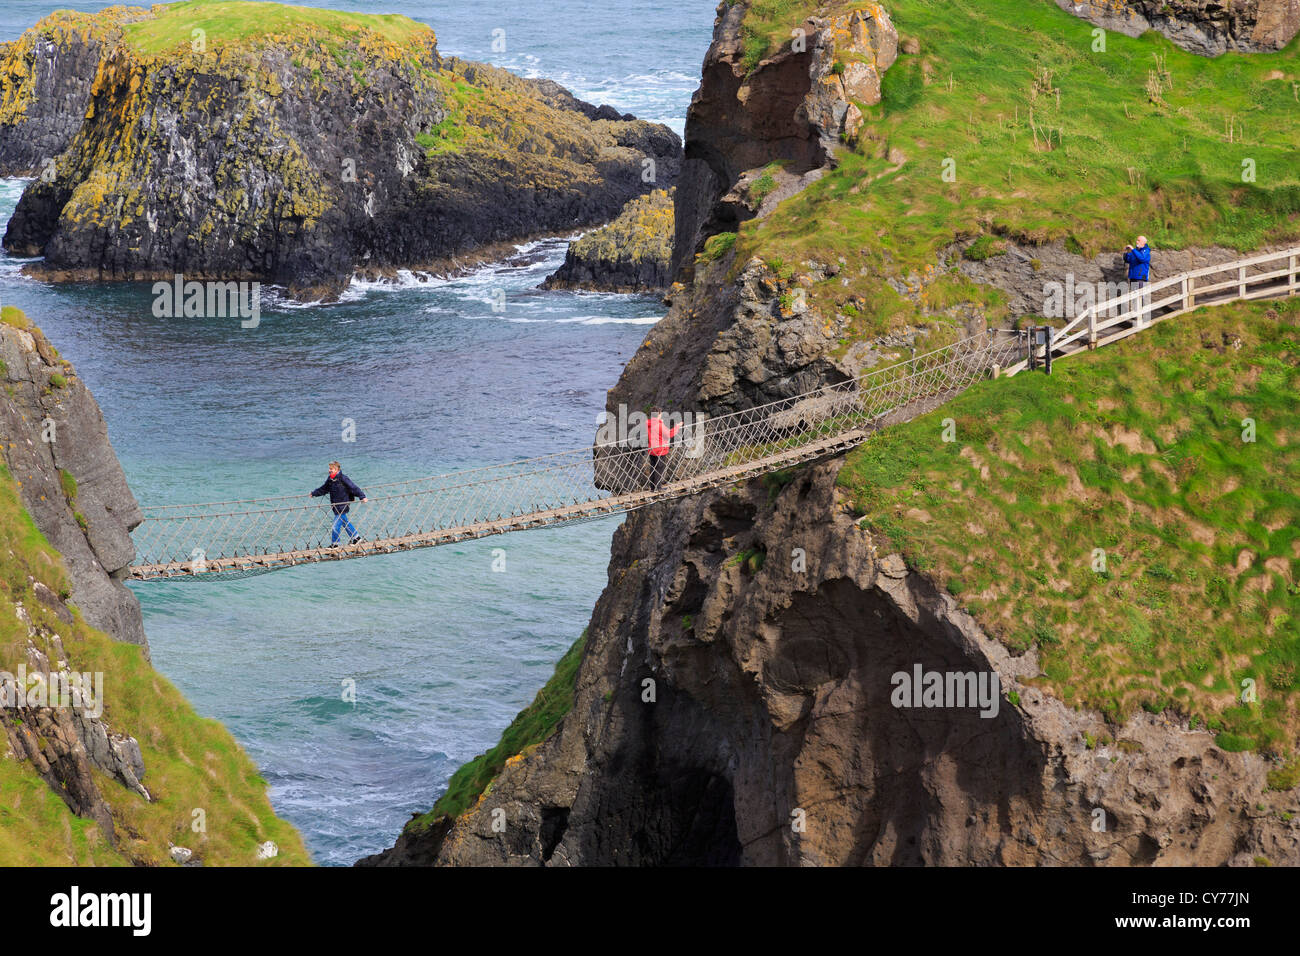 People walking on Carrick-a-Rede Rope Bridge from Carrick Island to the mainland in County Antrim, Northern Ireland, - Stock Image